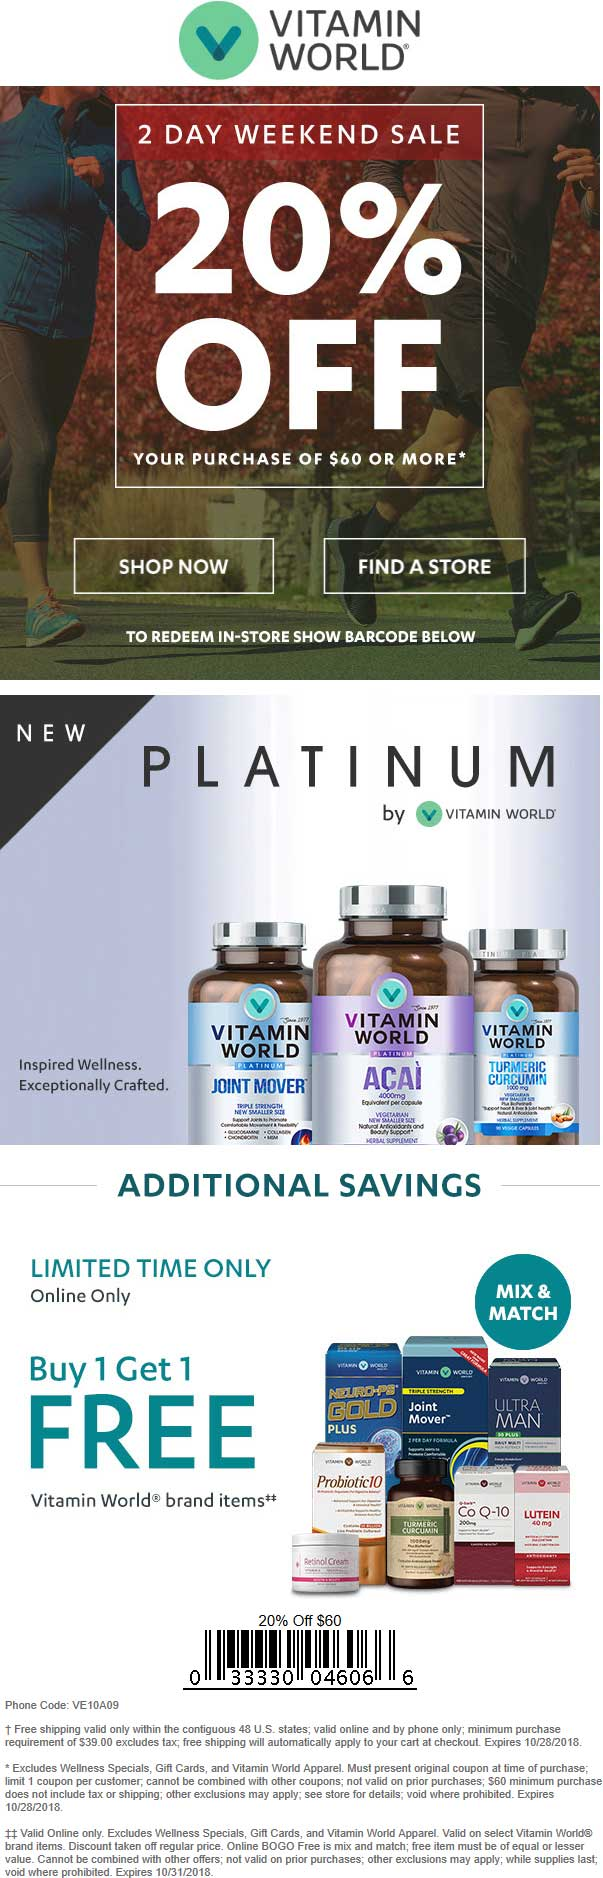 Vitamin World Coupon July 2019 20% off $60 at Vitamin World, or online via promo code VE10A09